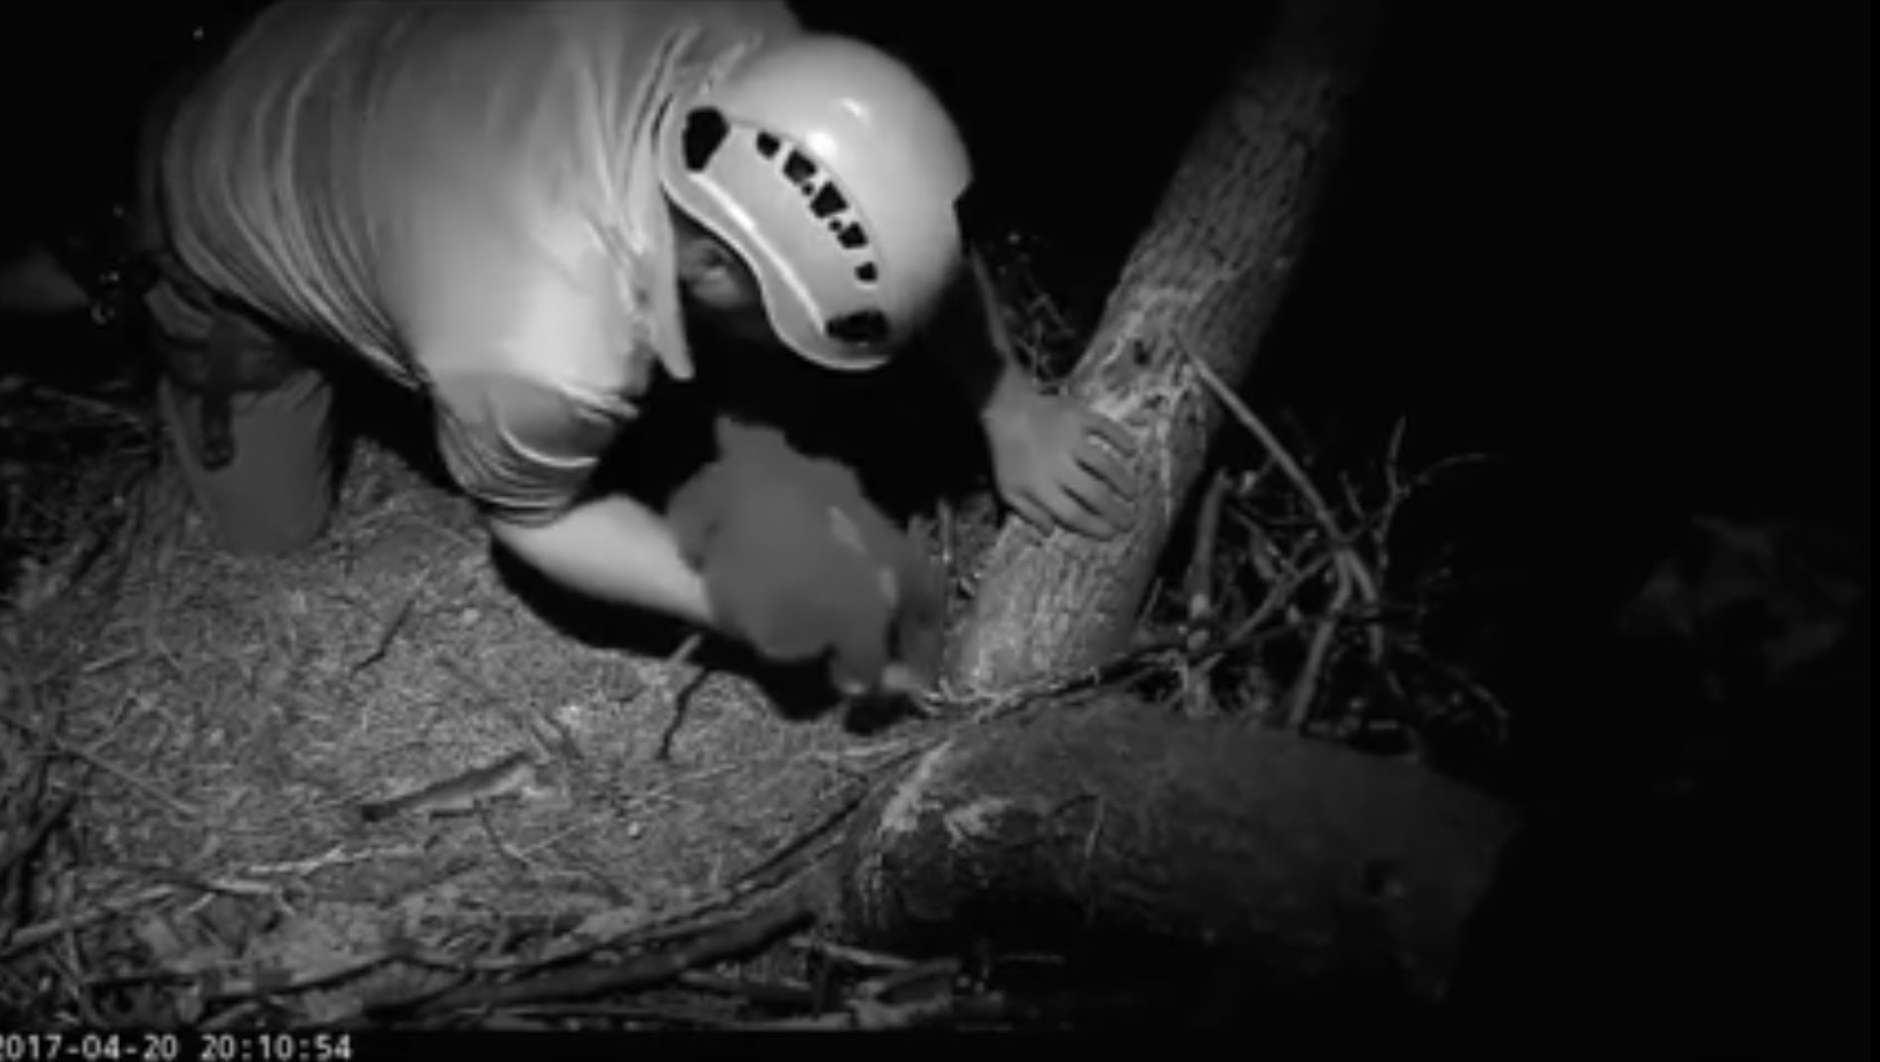 Scenes from the rescue of the eaglet Thursday evening. (C) 2017 American Eagle Foundation, www.eagles.org